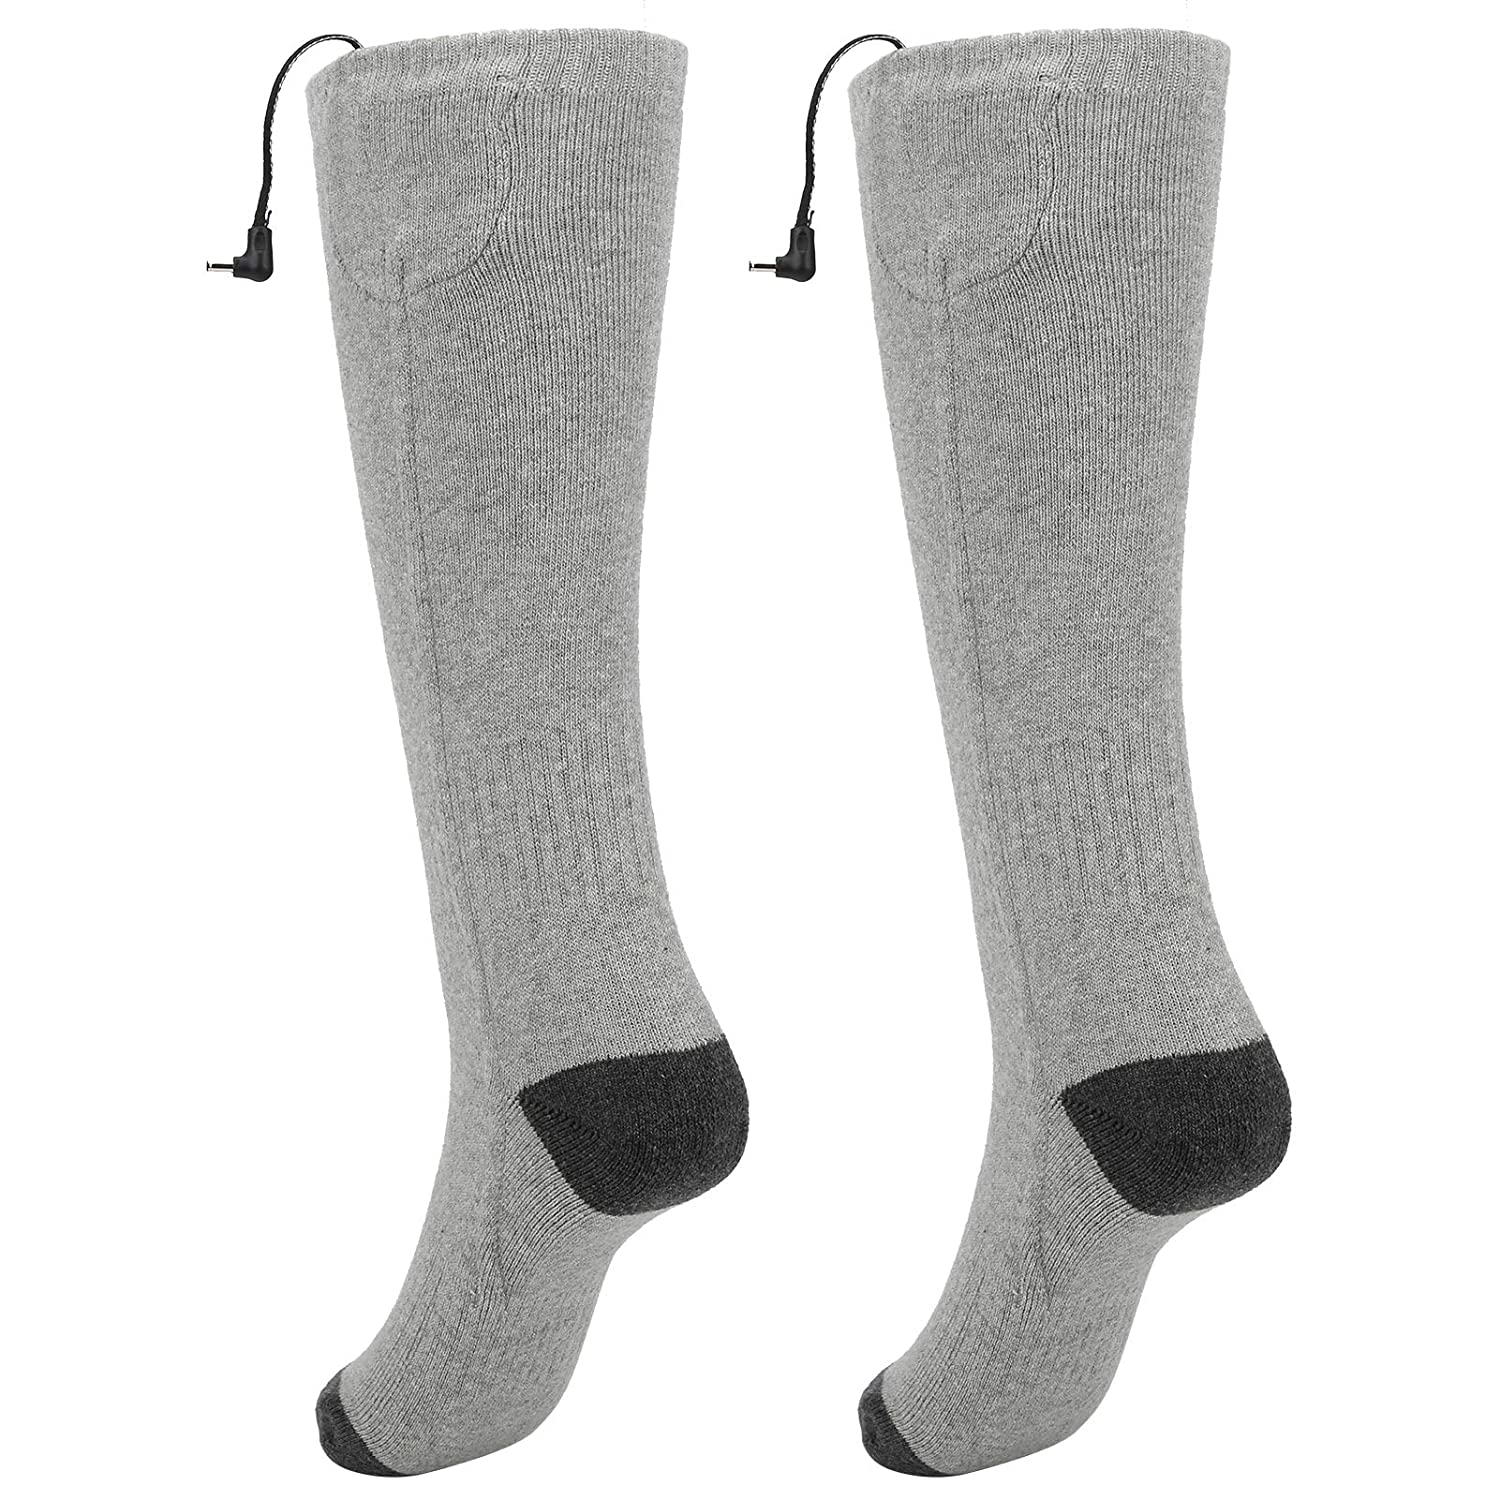 Thicken Heating Stockings Comfortable and Max 86% OFF Wear‑Resistant Heati 70% OFF Outlet